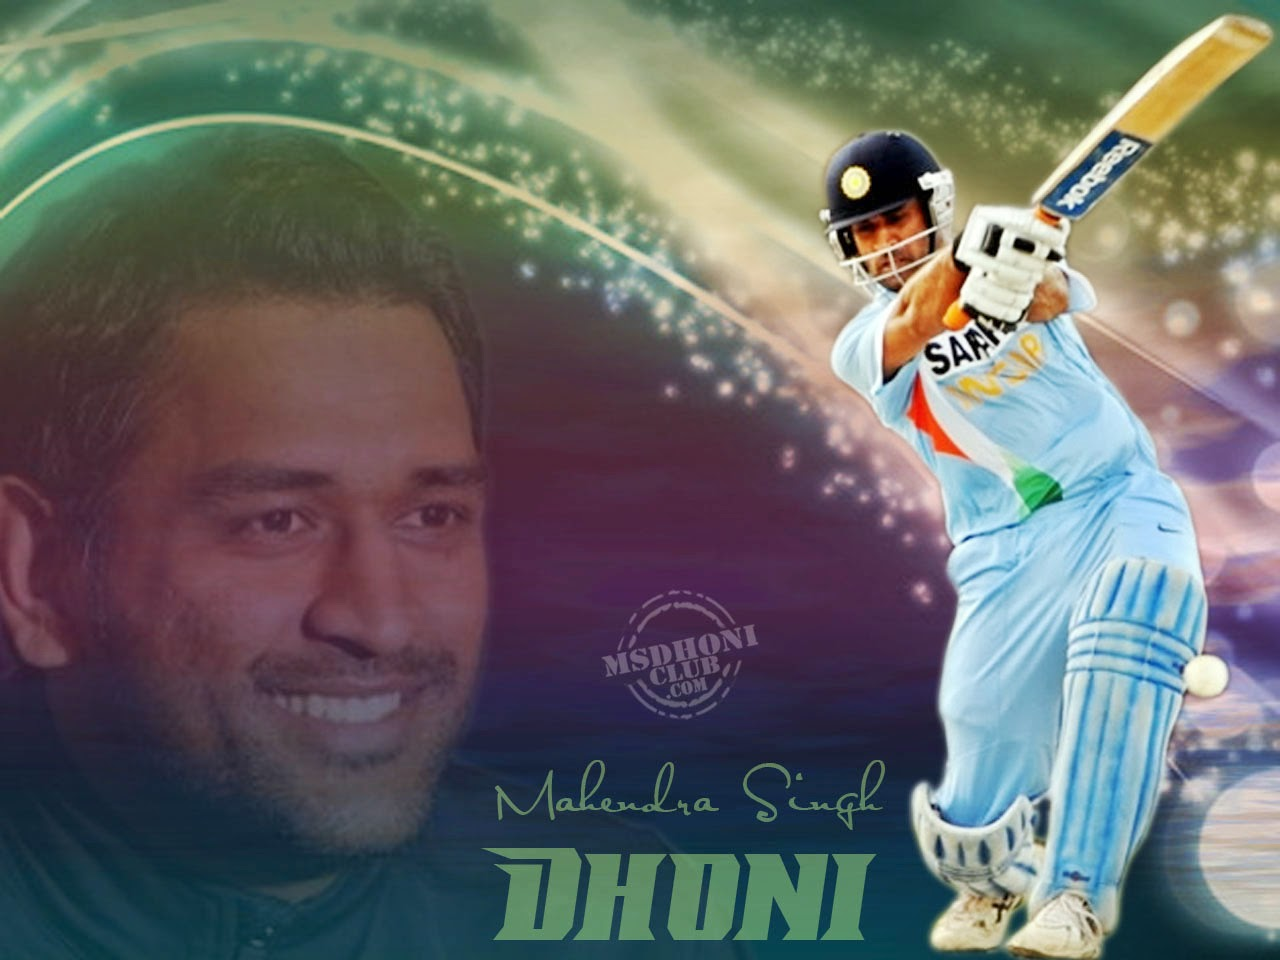 online playing cricket